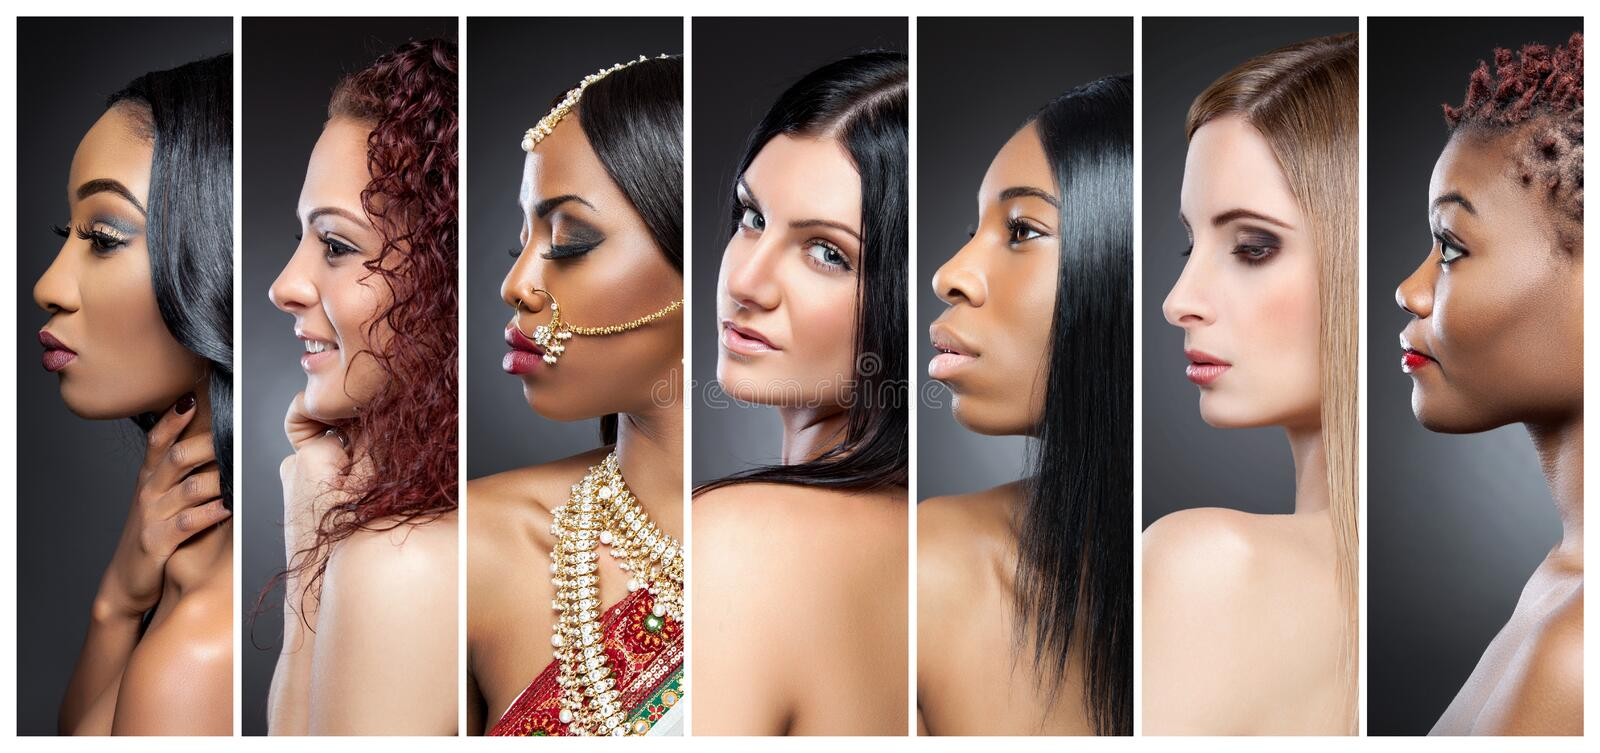 Profile view collage of multiple women with various skin tones. Profile view collage of multiple beautiful women with various skin tones royalty free stock photo